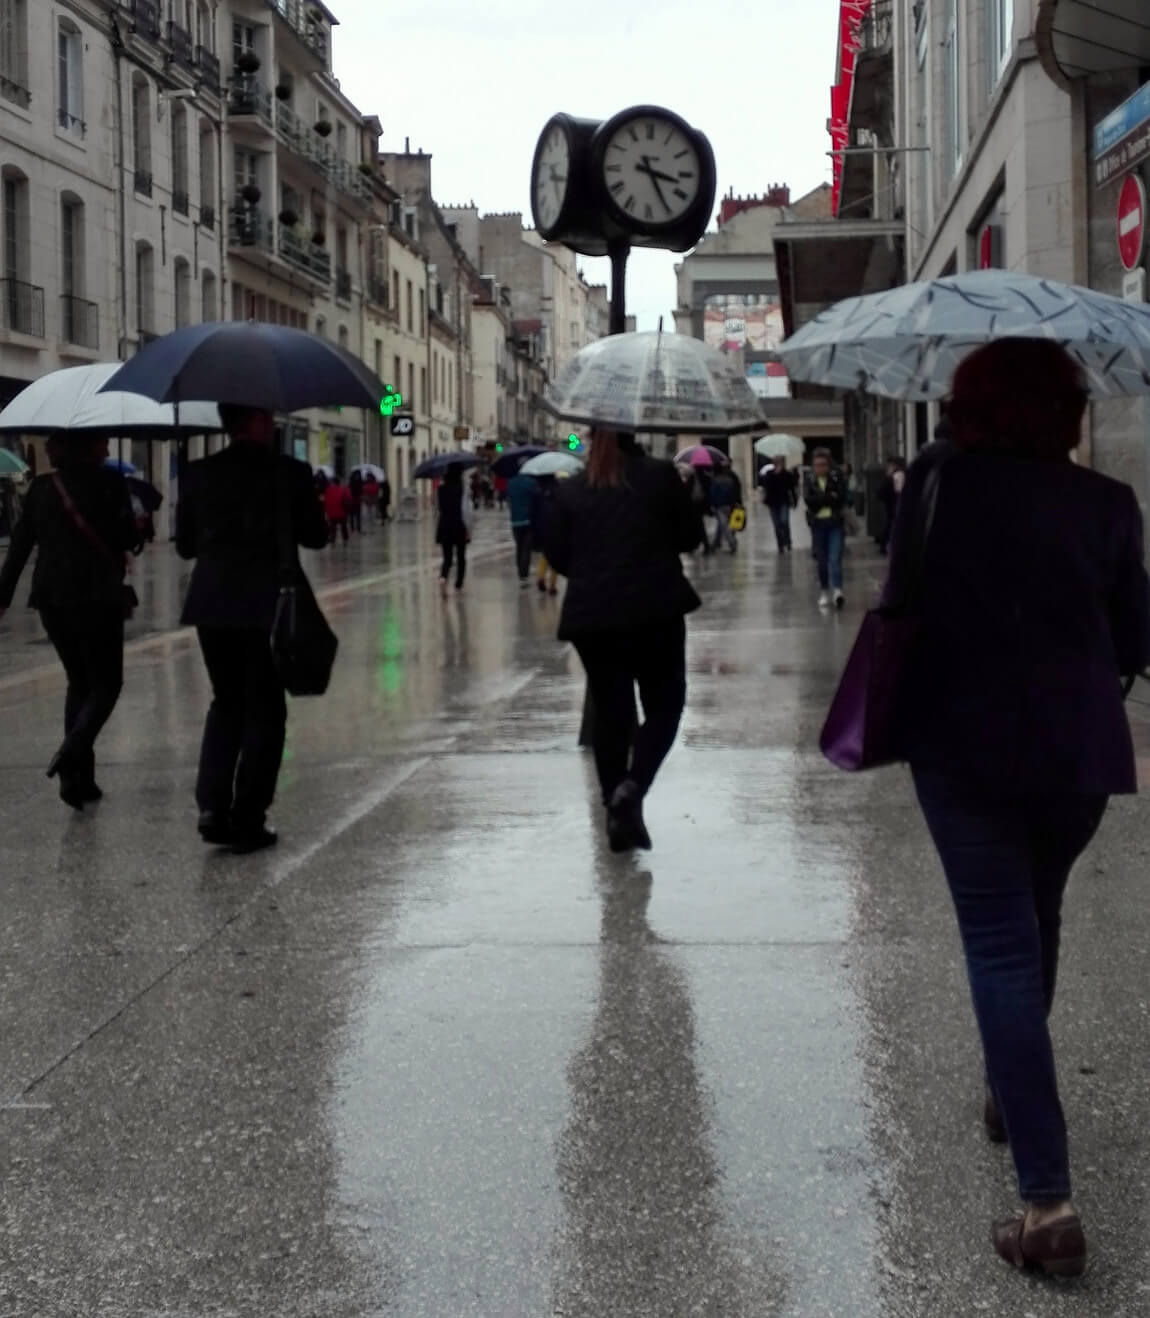 a photograph of people using umbrellas in the rain